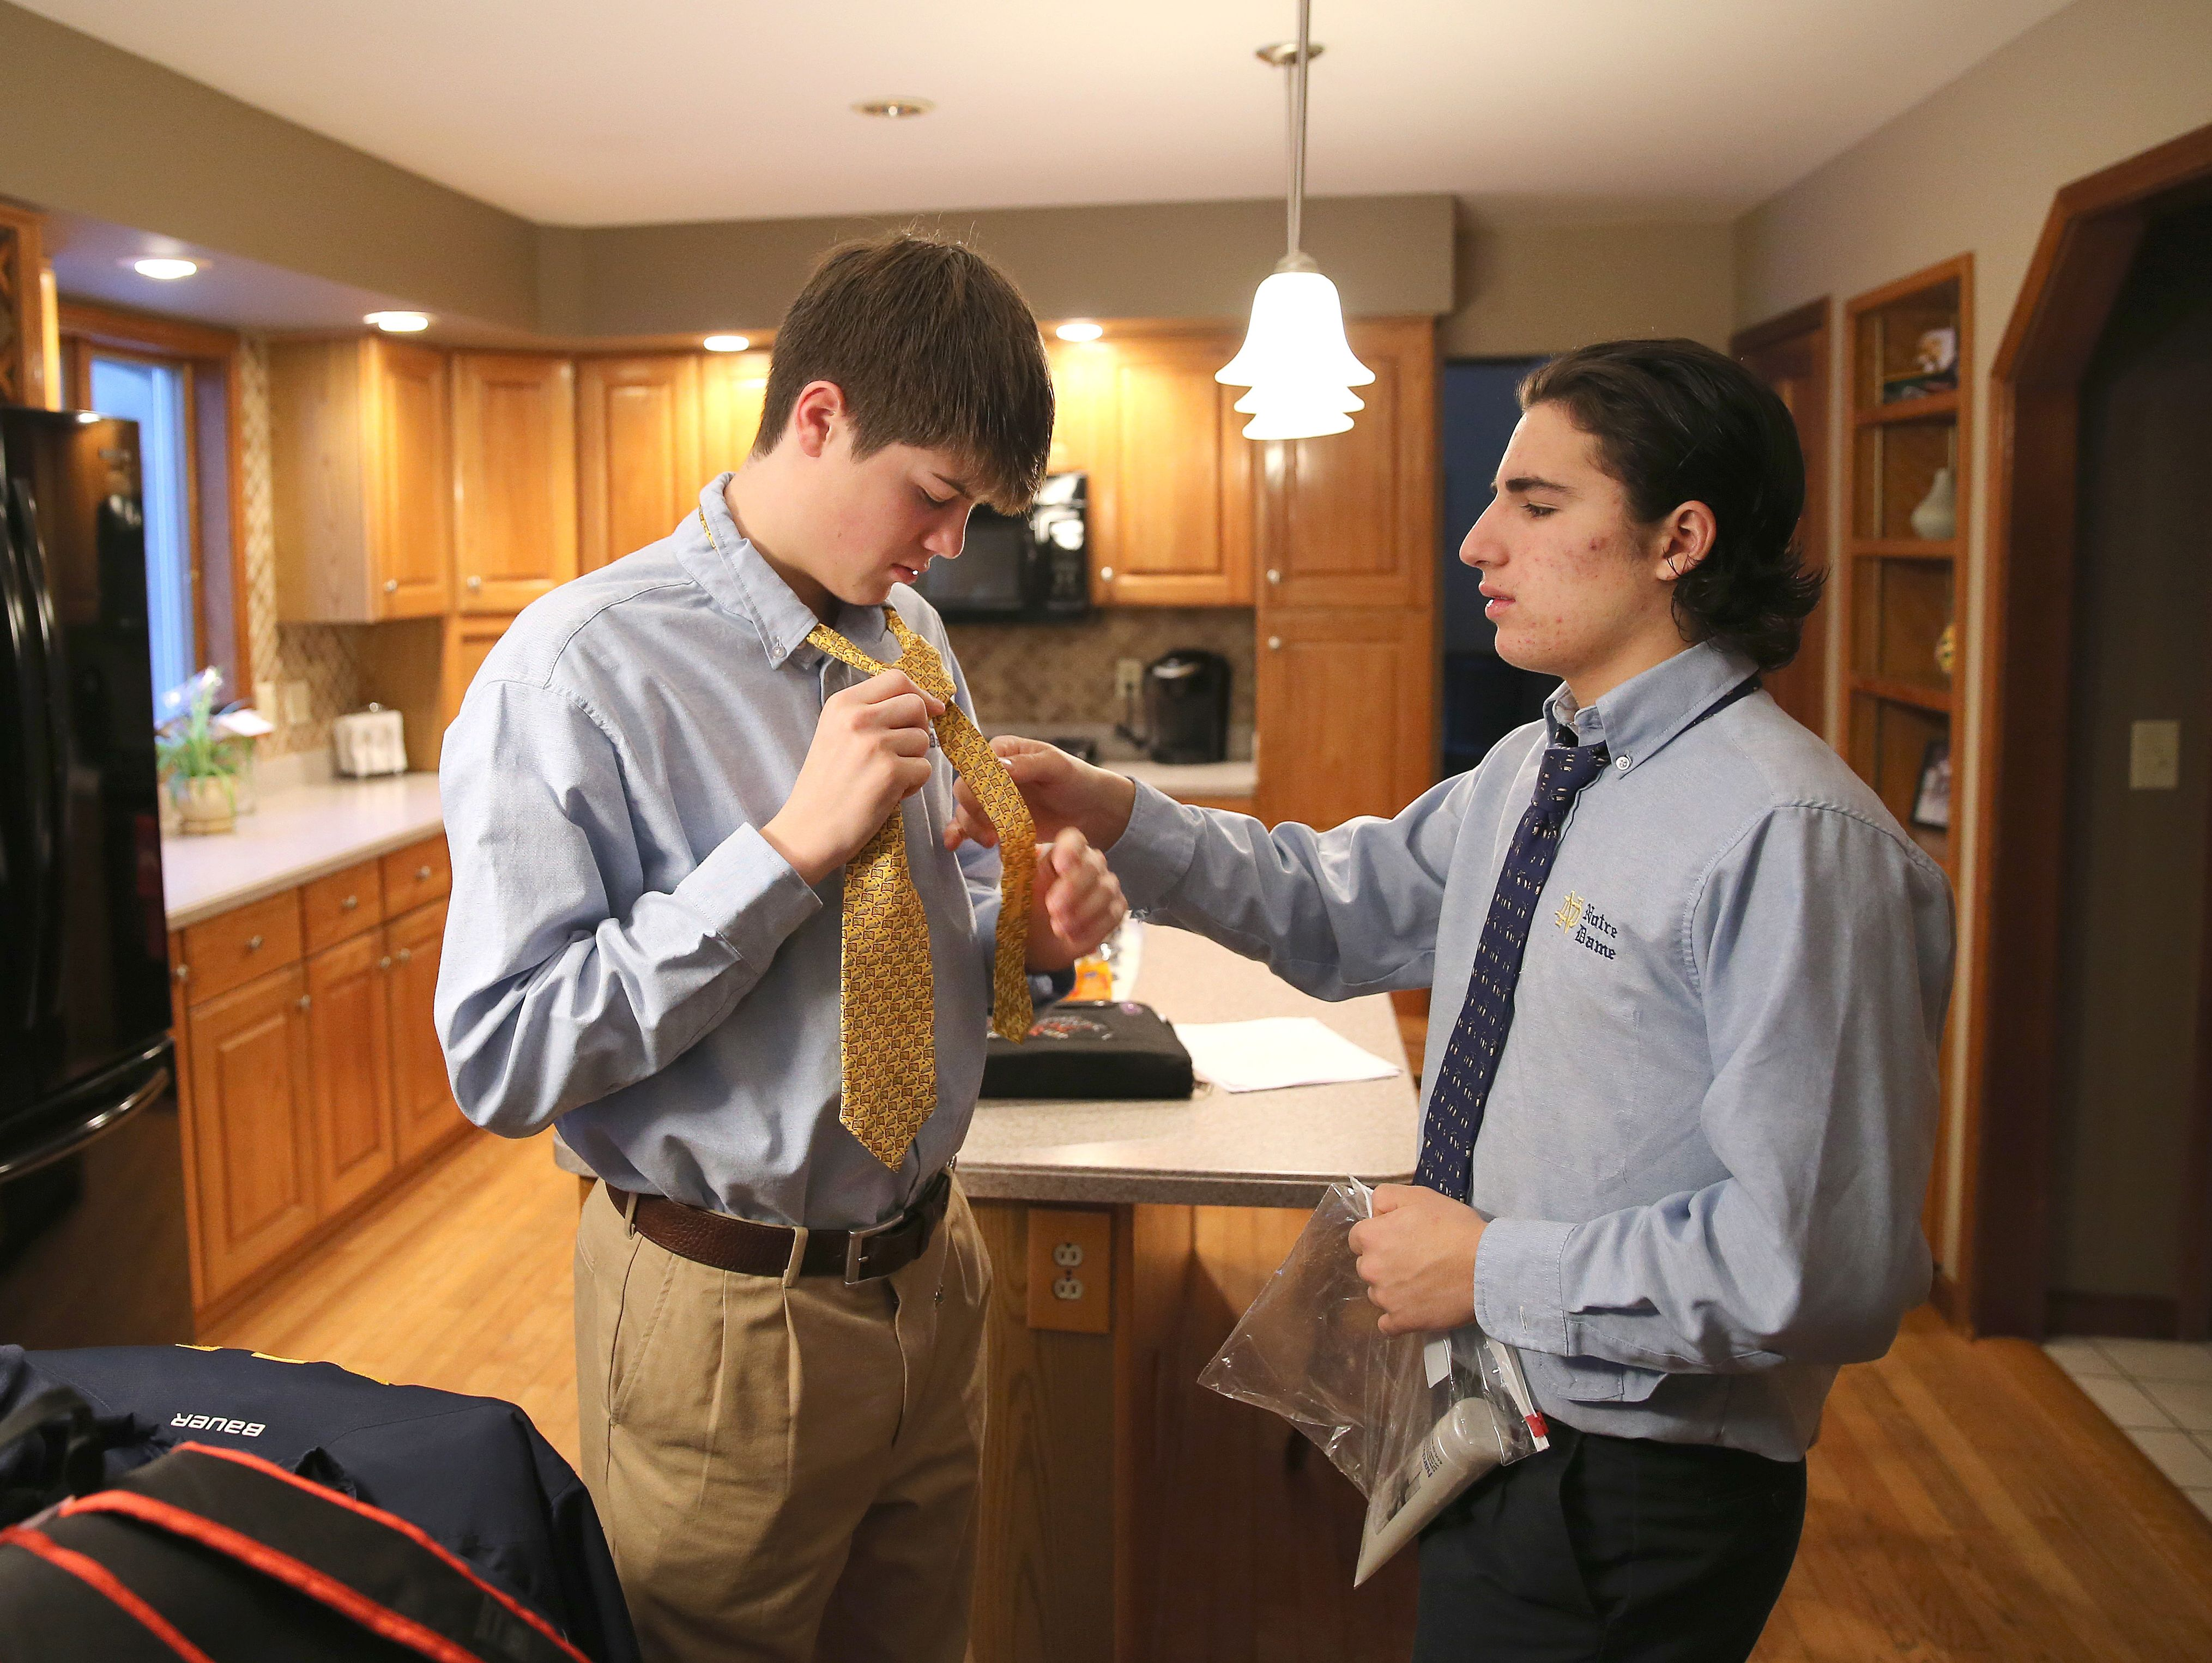 Batavia Notre Dame hockey players get dressed for school at the house of teammate Ethan Hutchins each morning after practice. Zachary Akin, left, gets some help with his tie from Michael Keeler.